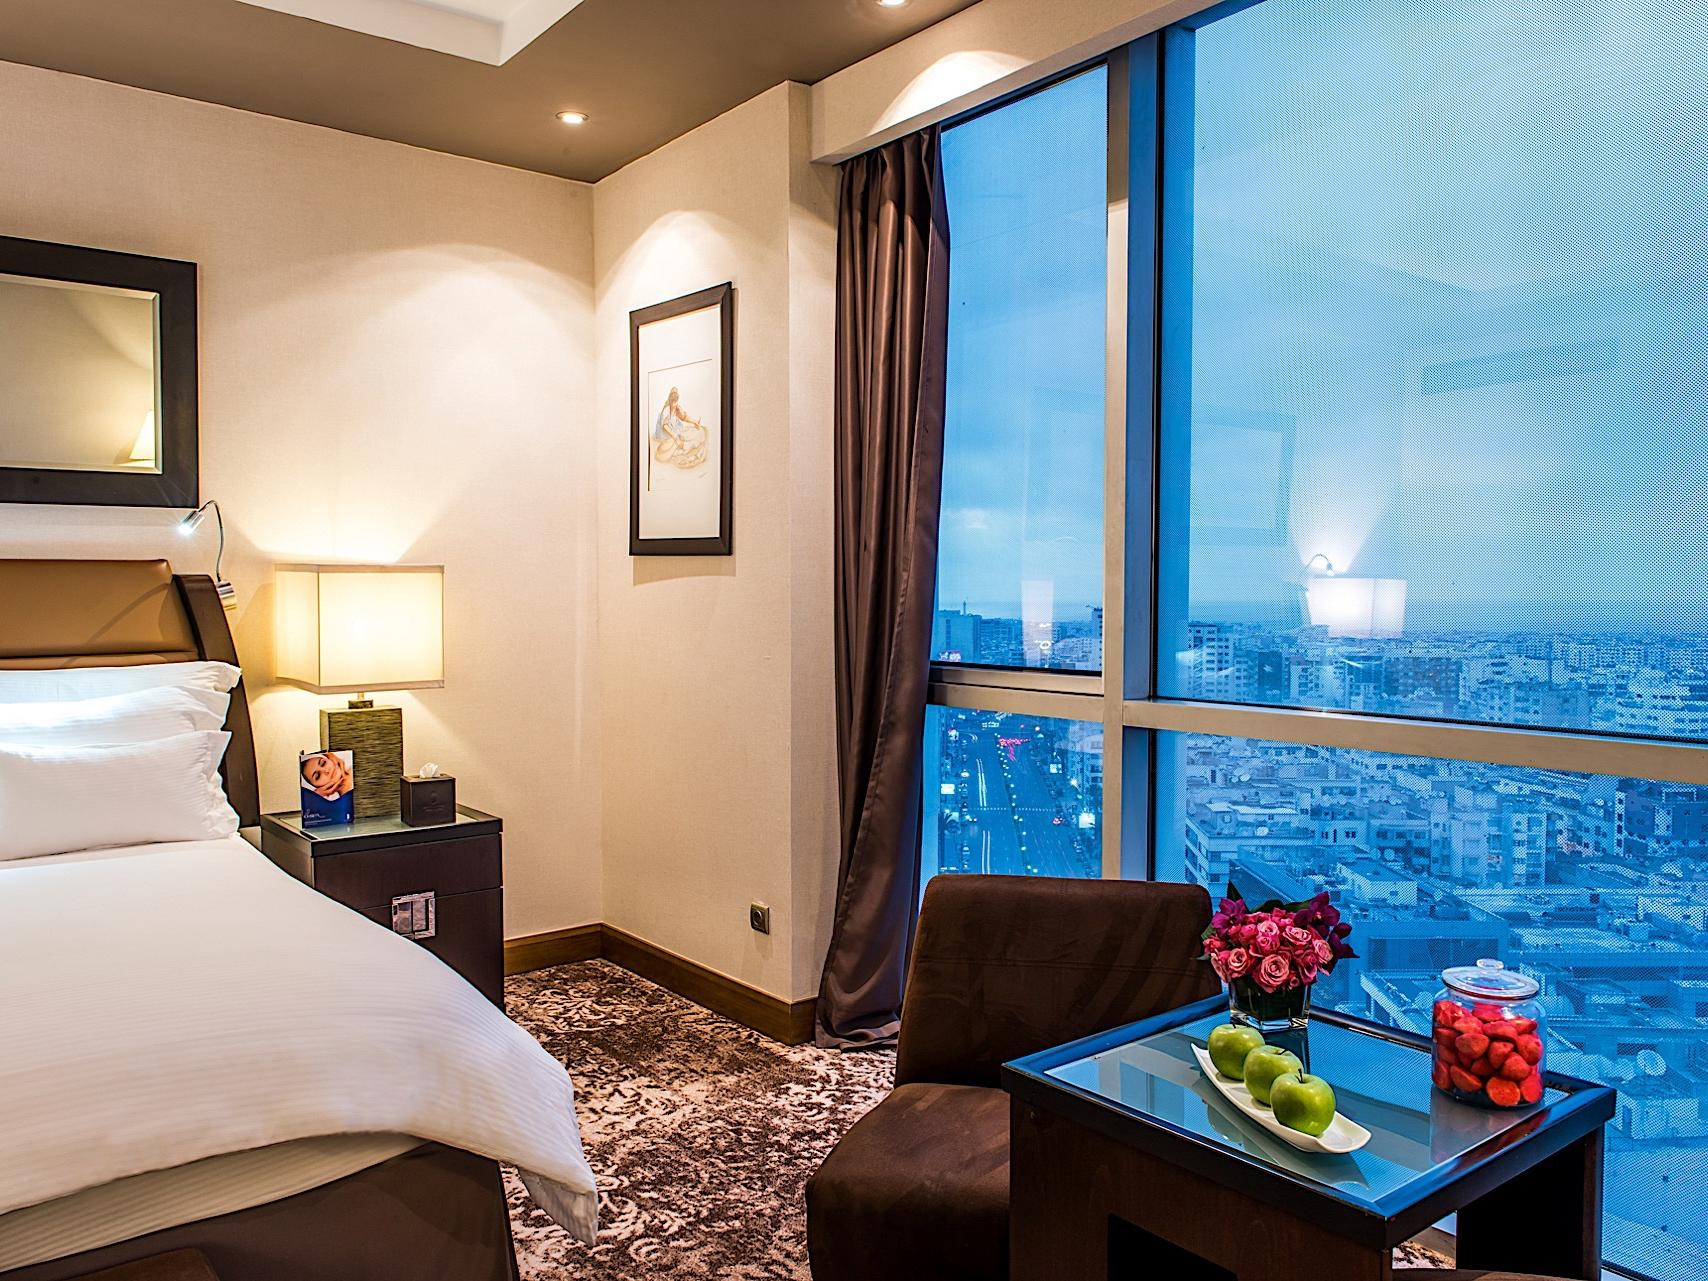 Deluxe Sky Room at Kenzi Hotels Group